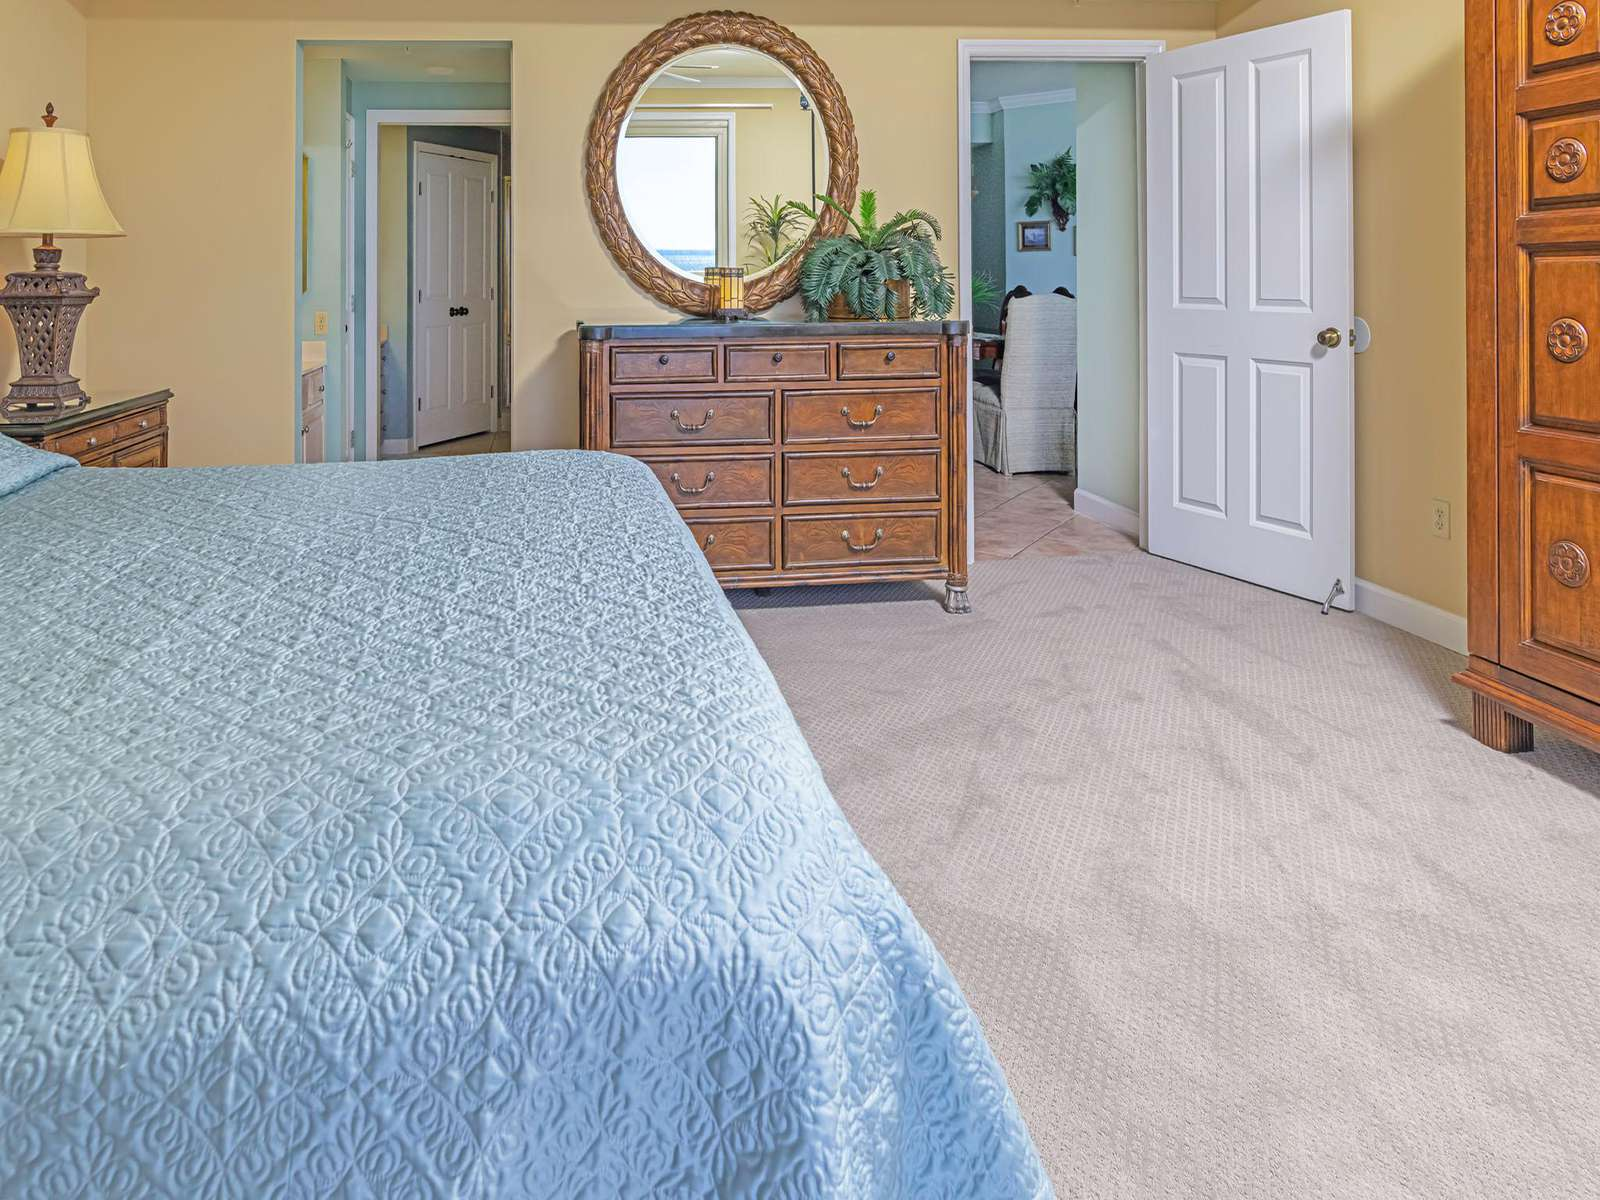 All bedrooms equipped with king beds!